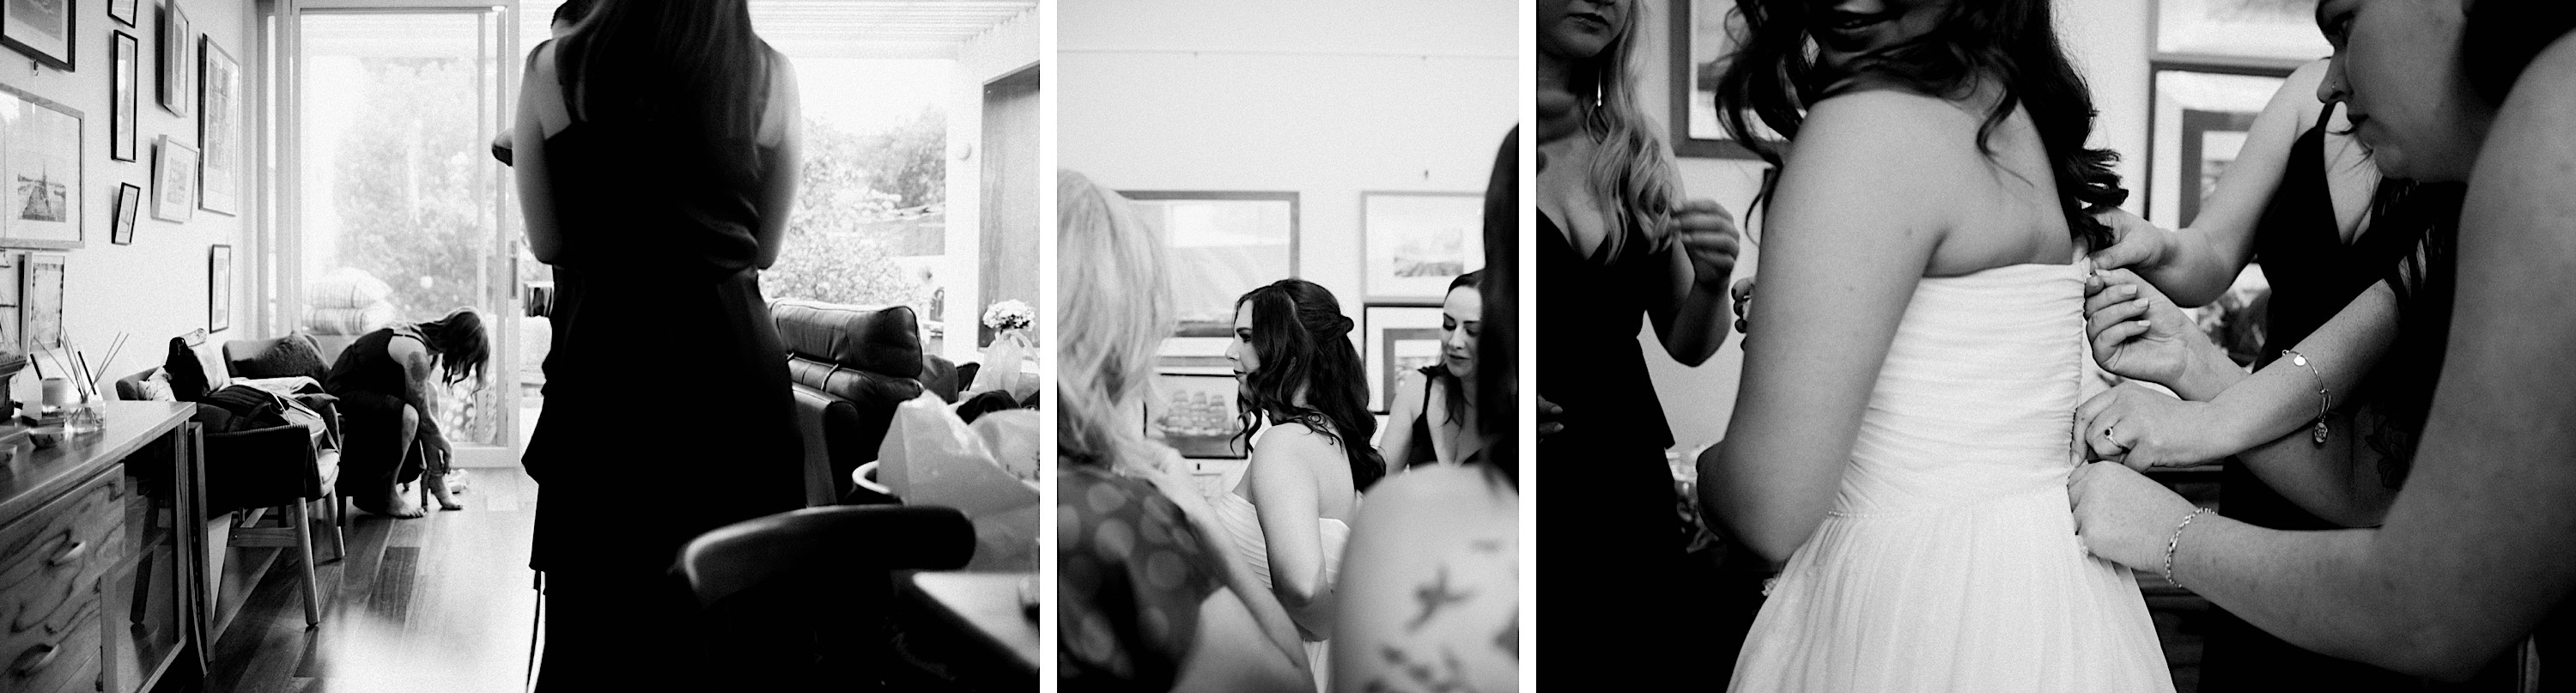 Three black & white documentary wedding photos of the bride getting dress with the help of her bridesmaids.